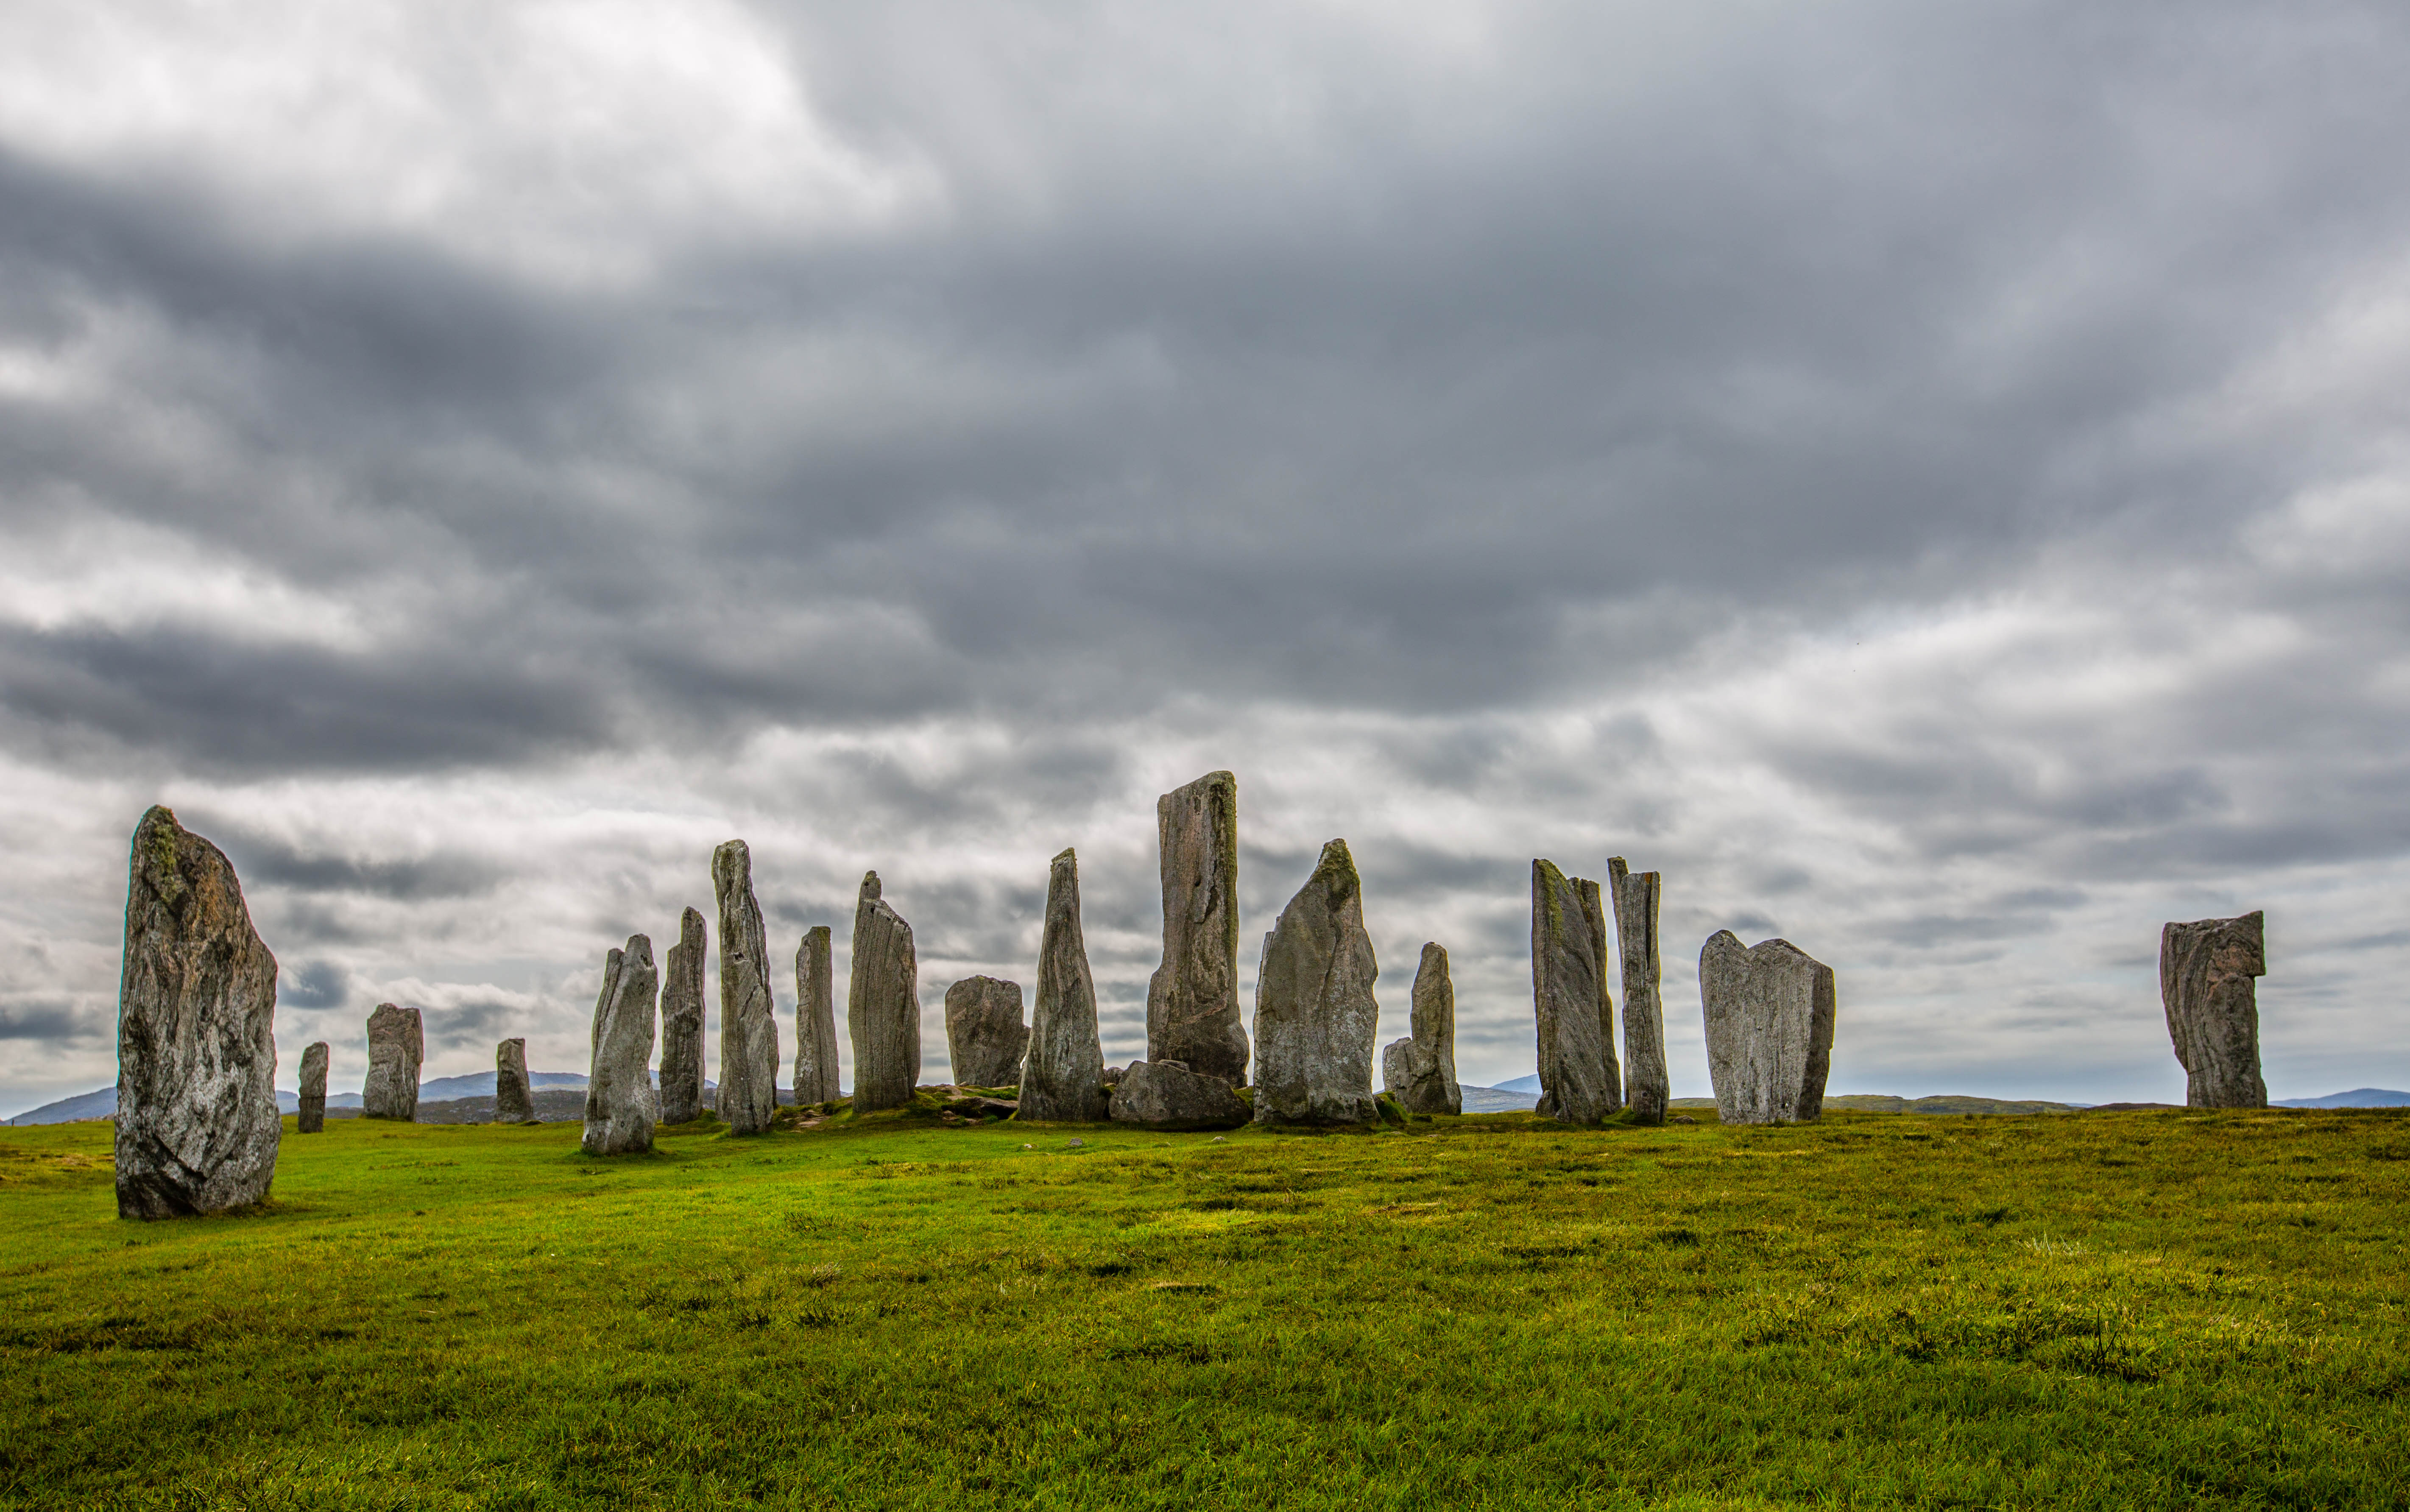 Calanais Standing Stones The Northern Highlands and the Western Isles, The Magnificent Standing Stones of Calanais in the Outer Hebrides ...